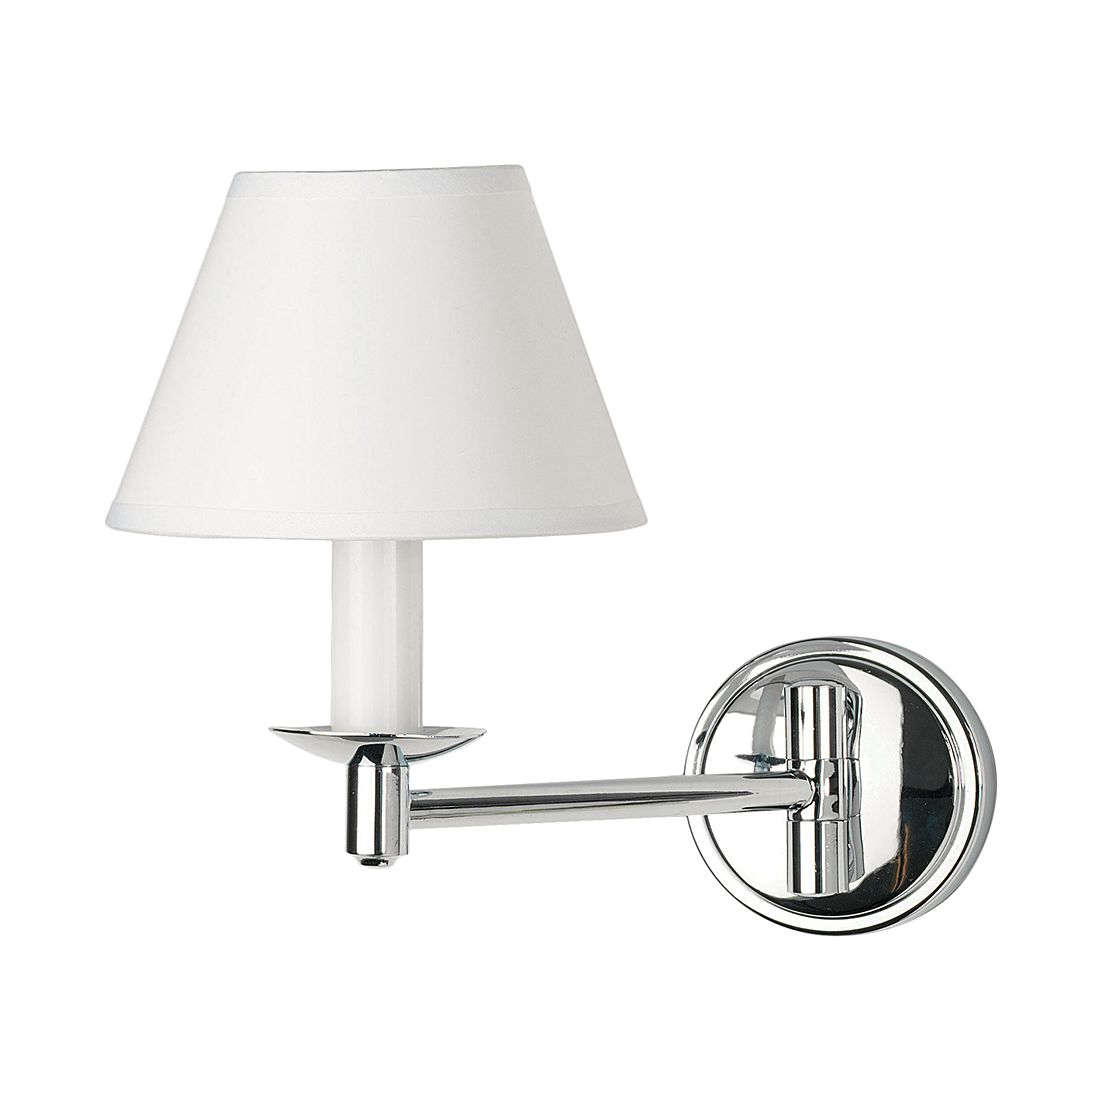 Eek a applique murale grosvenor chrome 1 ampoule - Applique murale ampoule ...